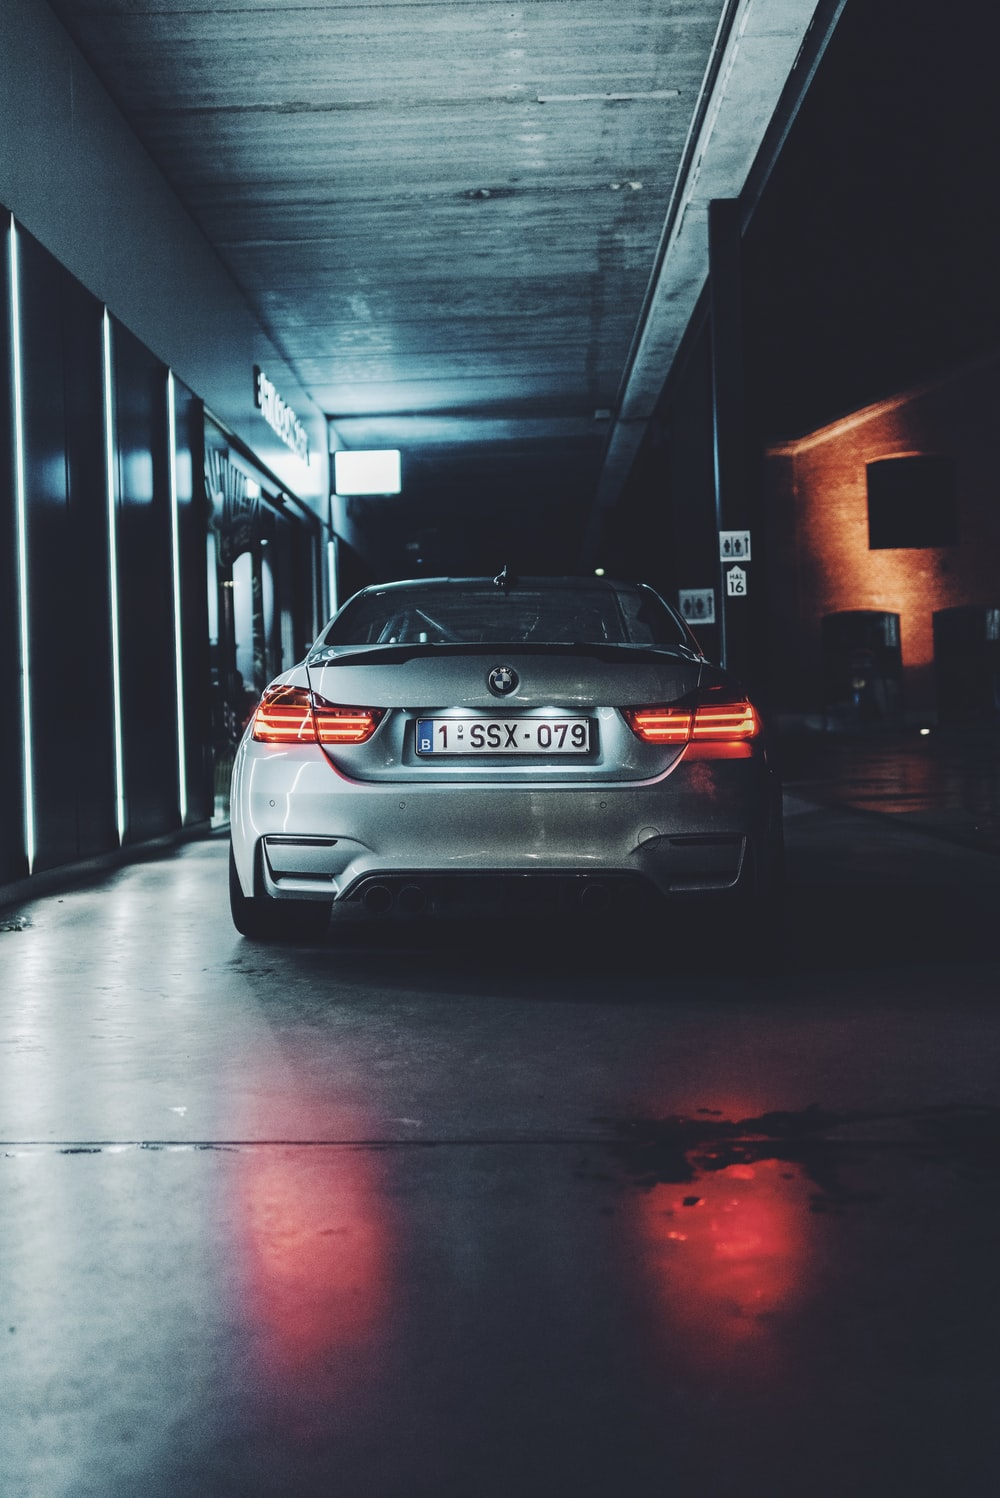 silver bmw m 3 parked in front of building